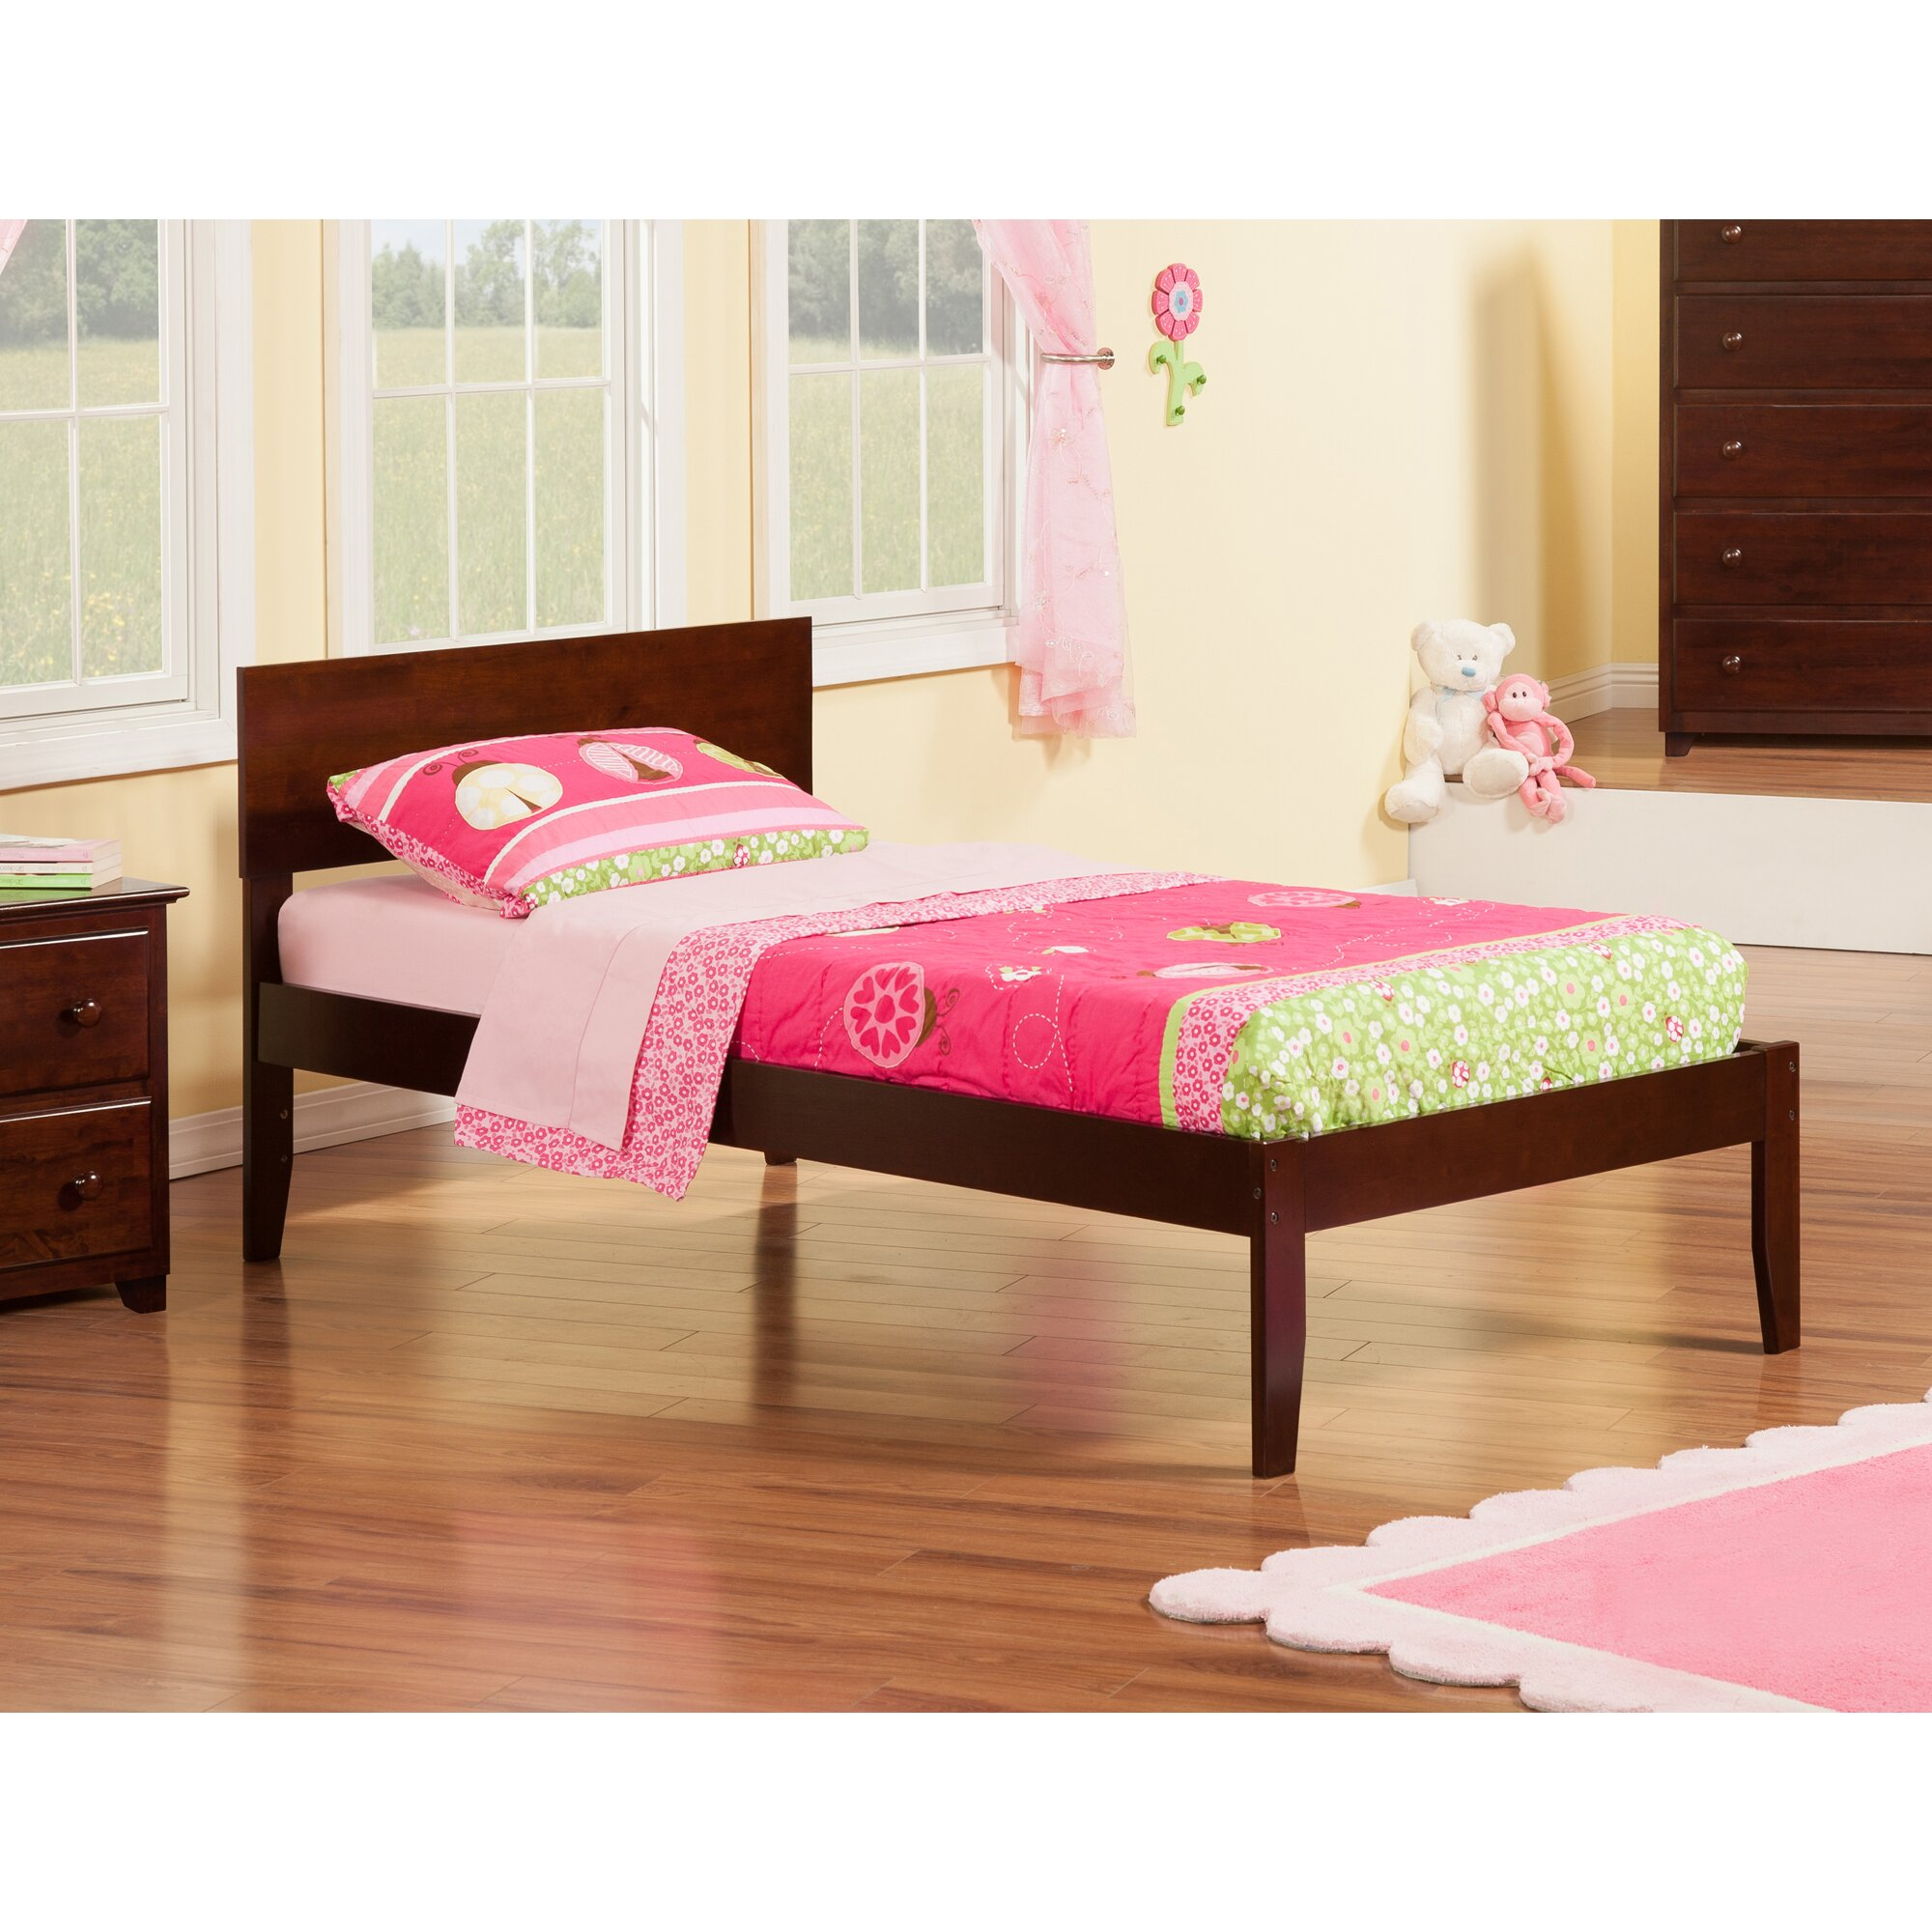 Atlantic Furniture Orlando Extra Long Twin Panel Bed Reviews Wayfair